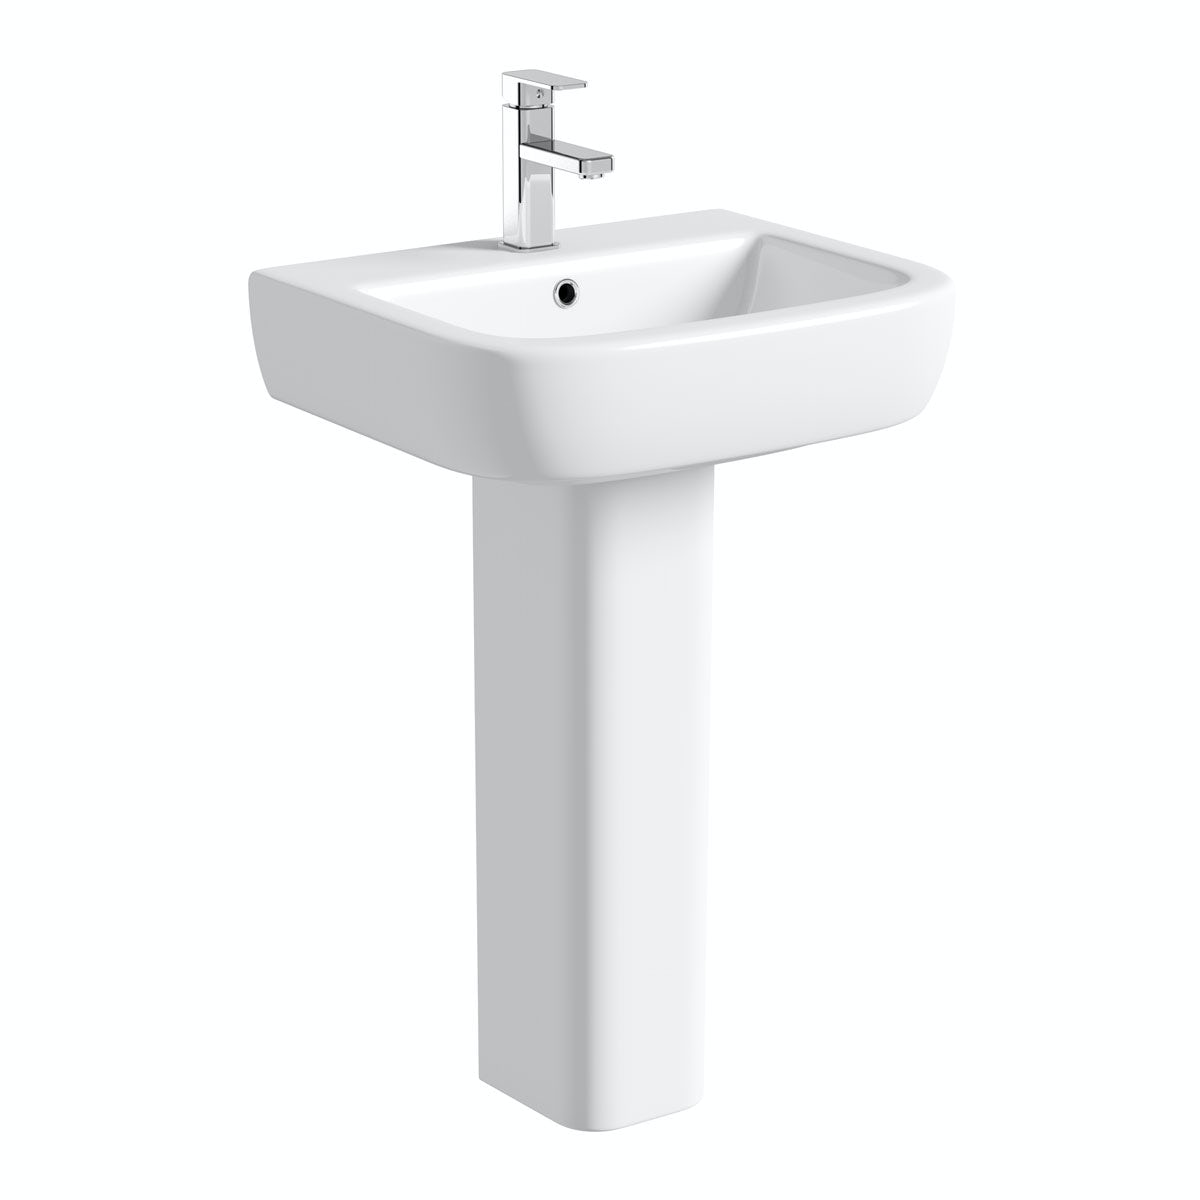 Mode Ellis 1 tap hole full pedestal basin 560mm